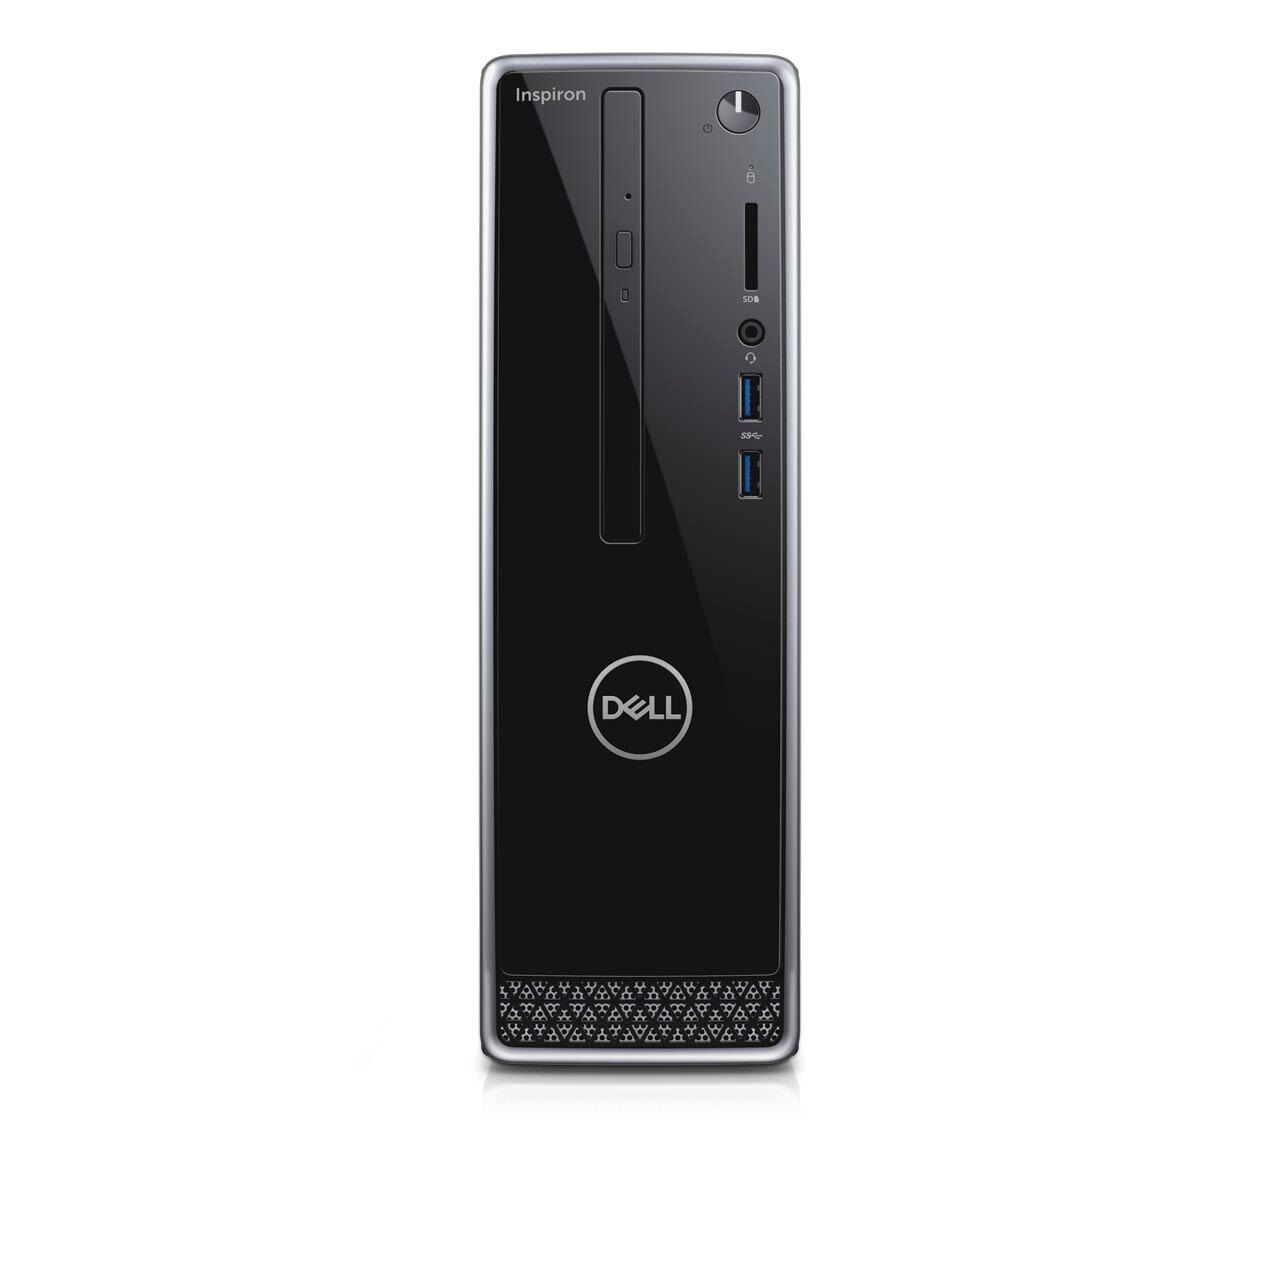 Dell Inspiron 3471 Desktop (Quad i3/8GB/256GB SSD & 1TB) + $107.25 Credit